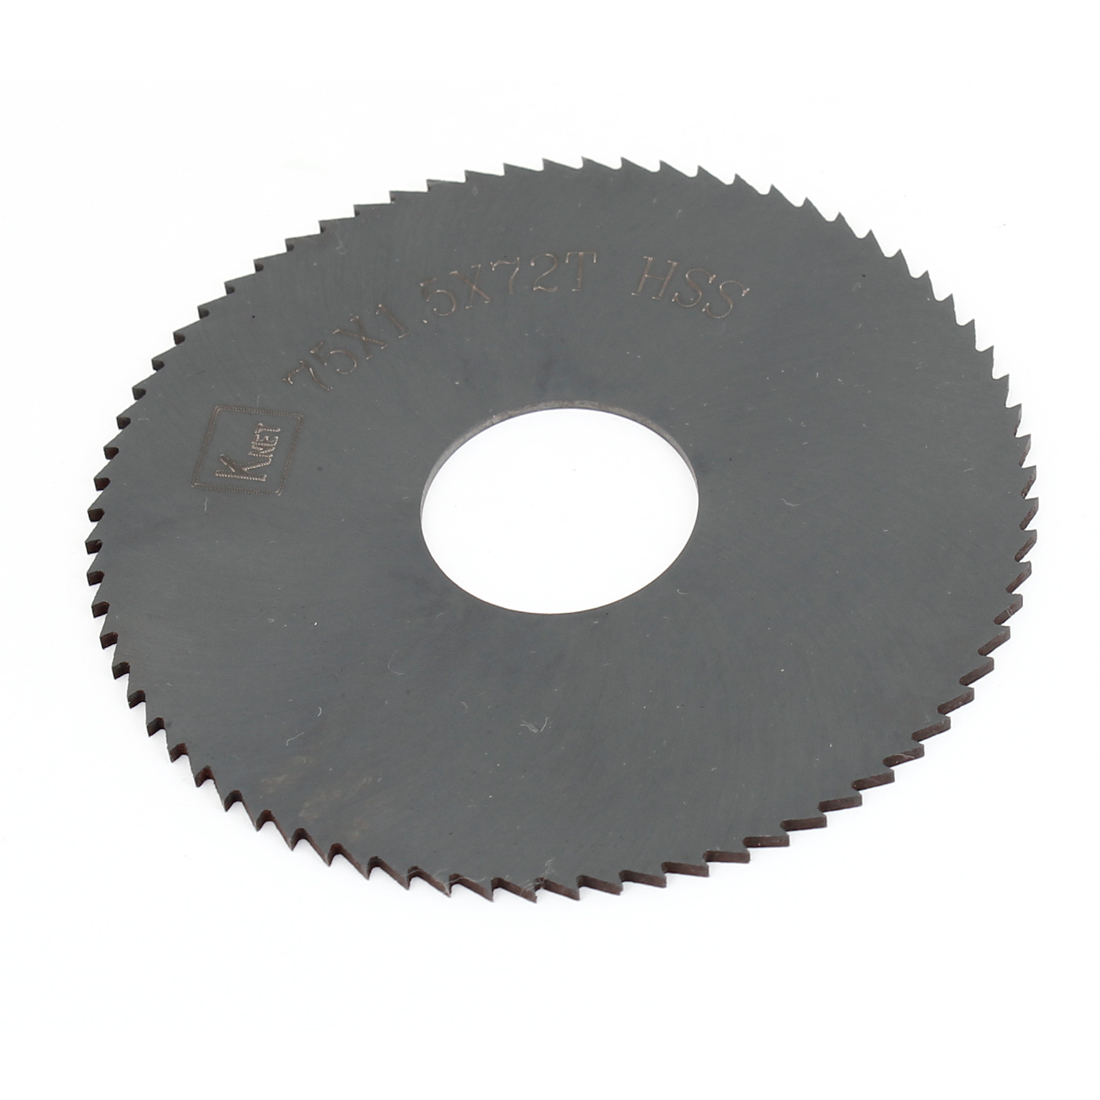 HSS 72 Teeth 75mm x 1.5mm x 22mm Slitting Saw Blade Spare Part